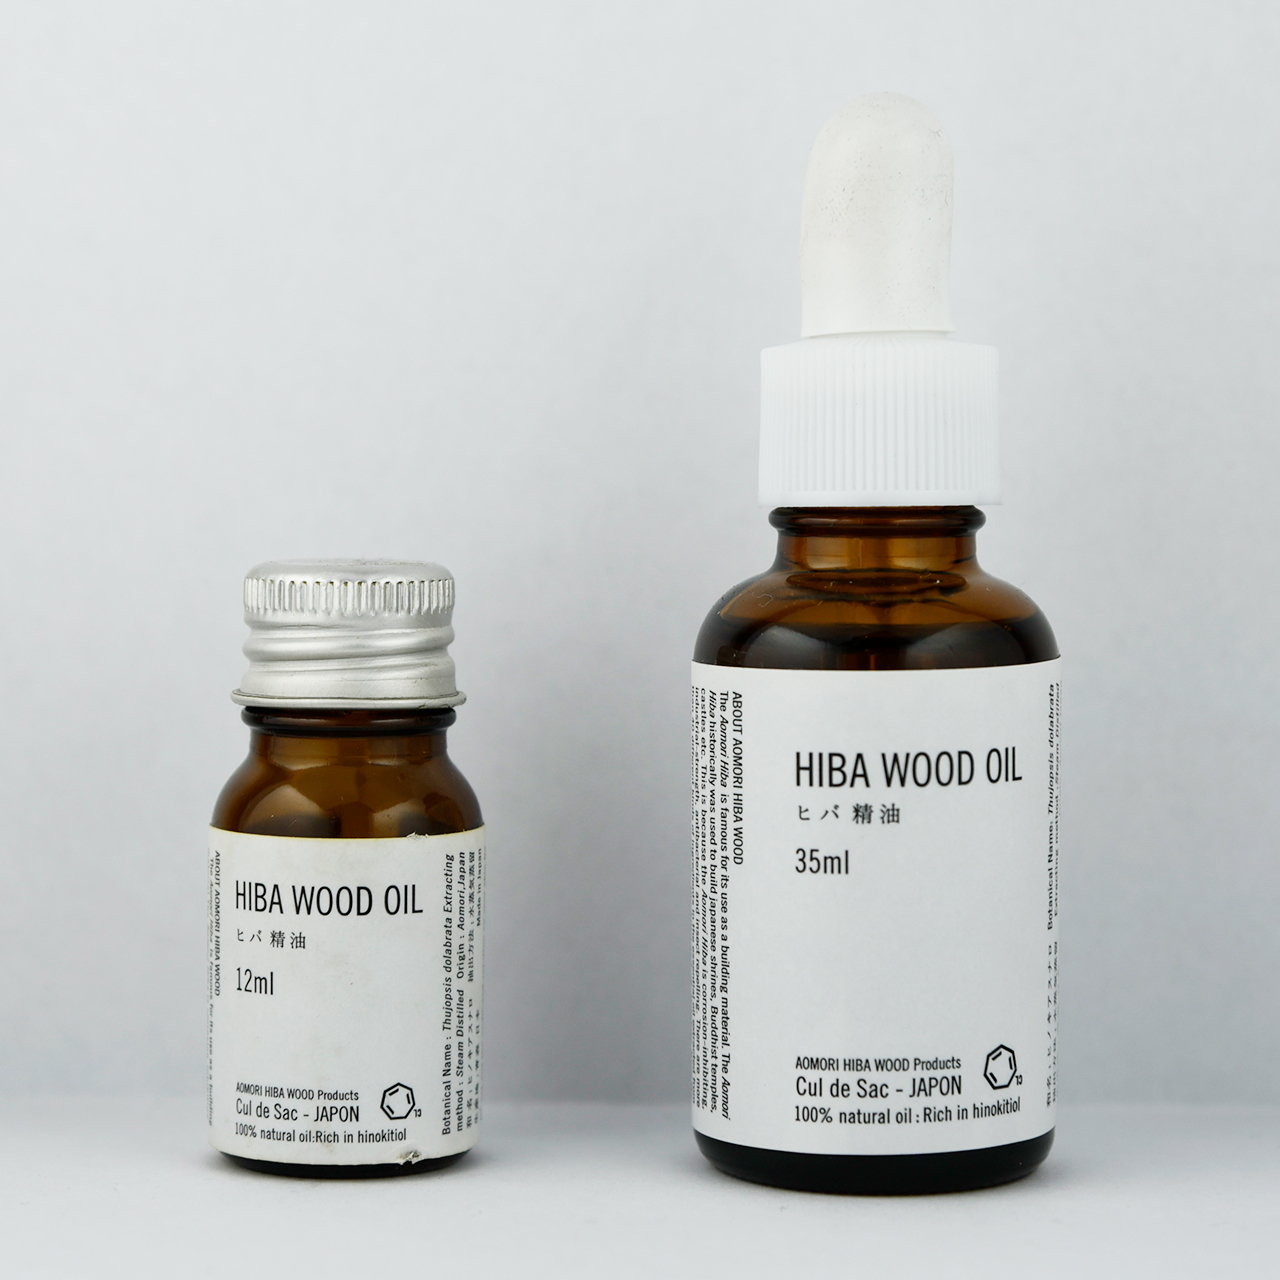 HIBA WOOD OIL 35ml